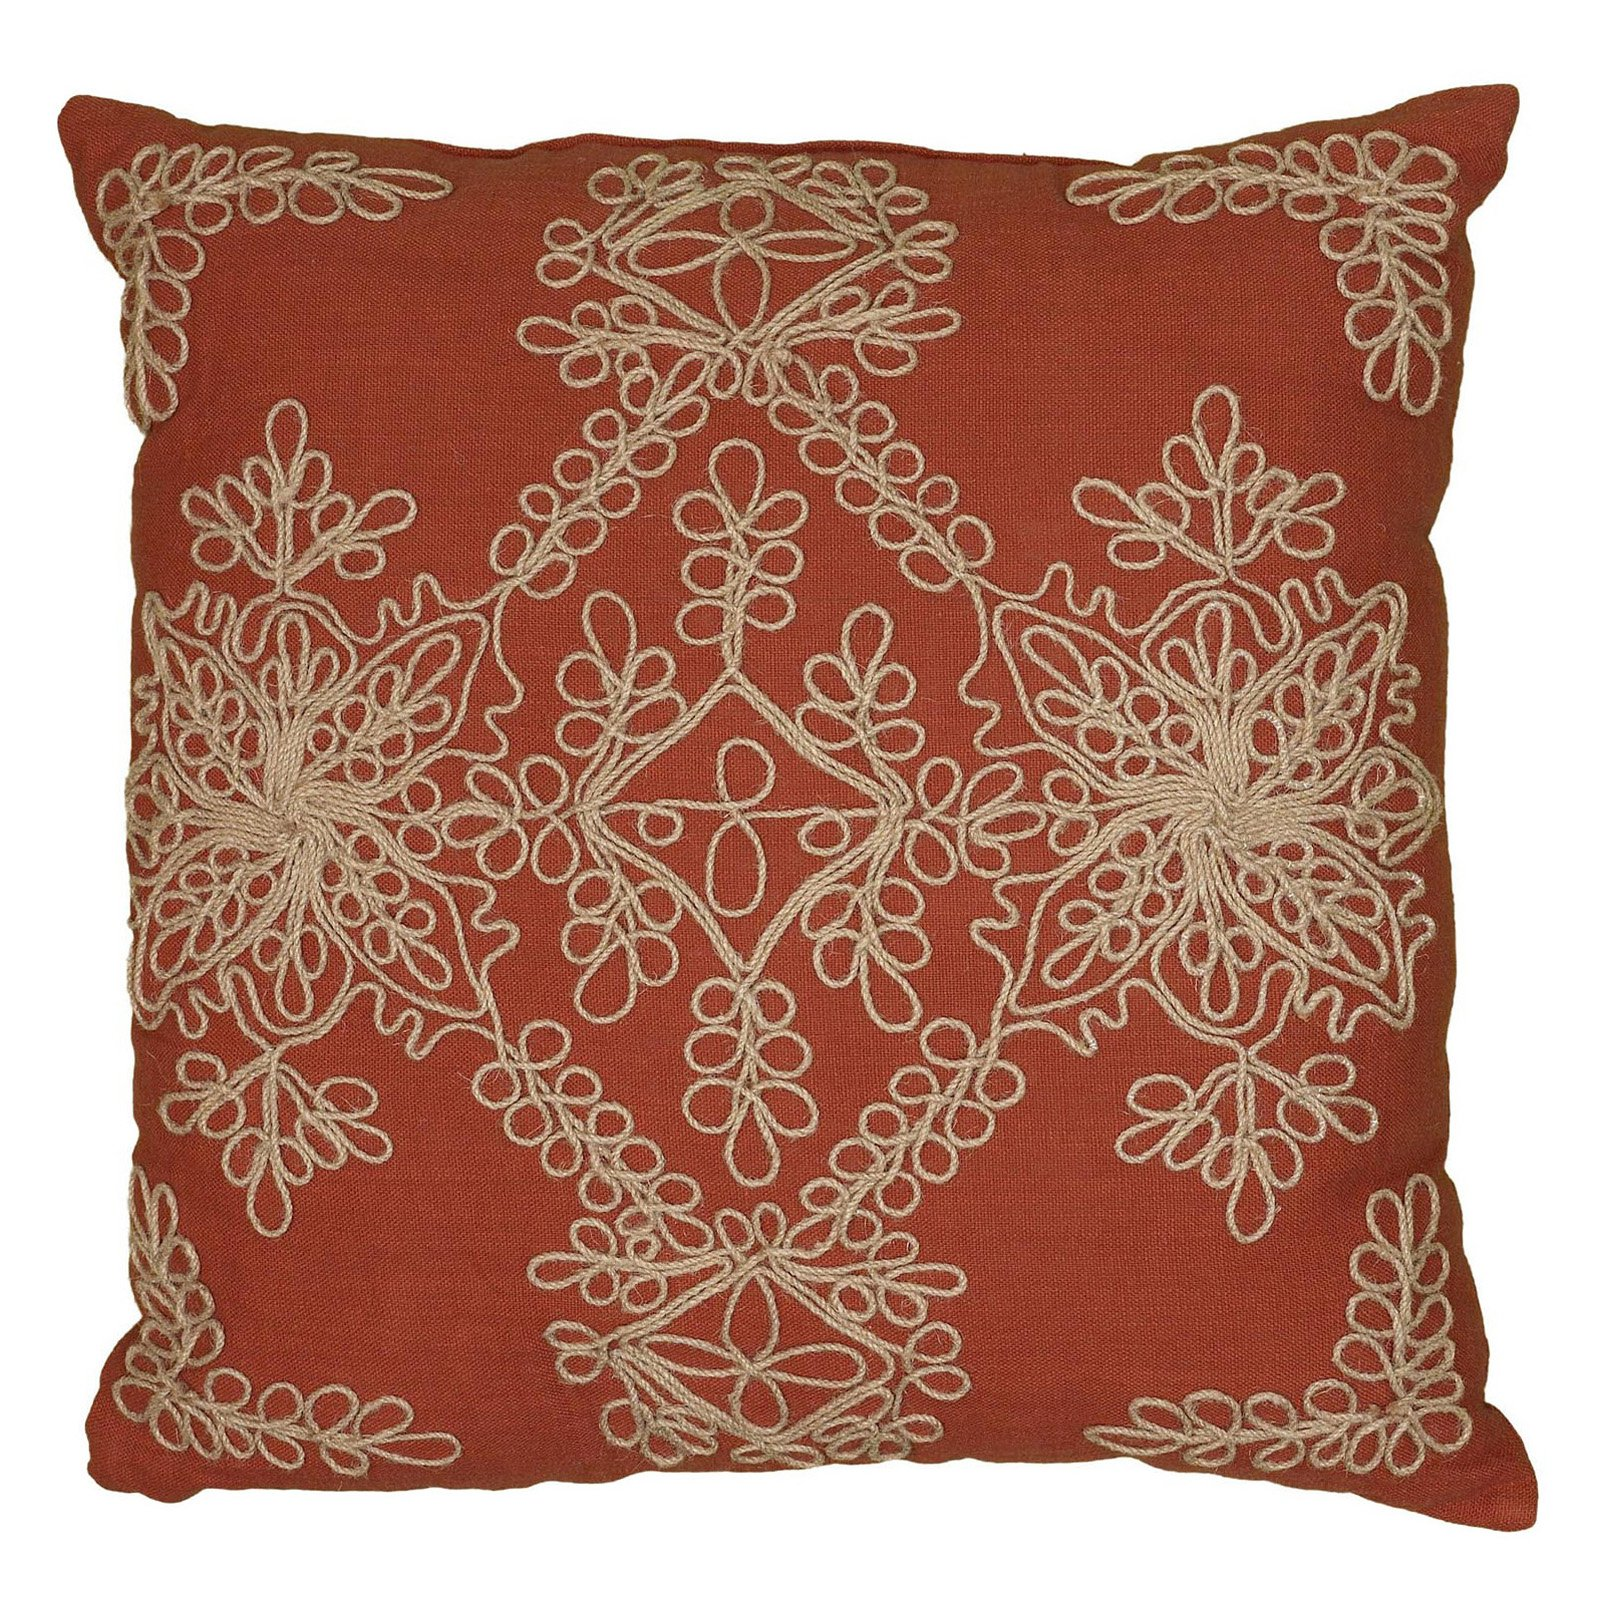 "Rizzy Home Medallion Poly Filled Decorative Throw Pillow, 18"" x 18"", Rust"